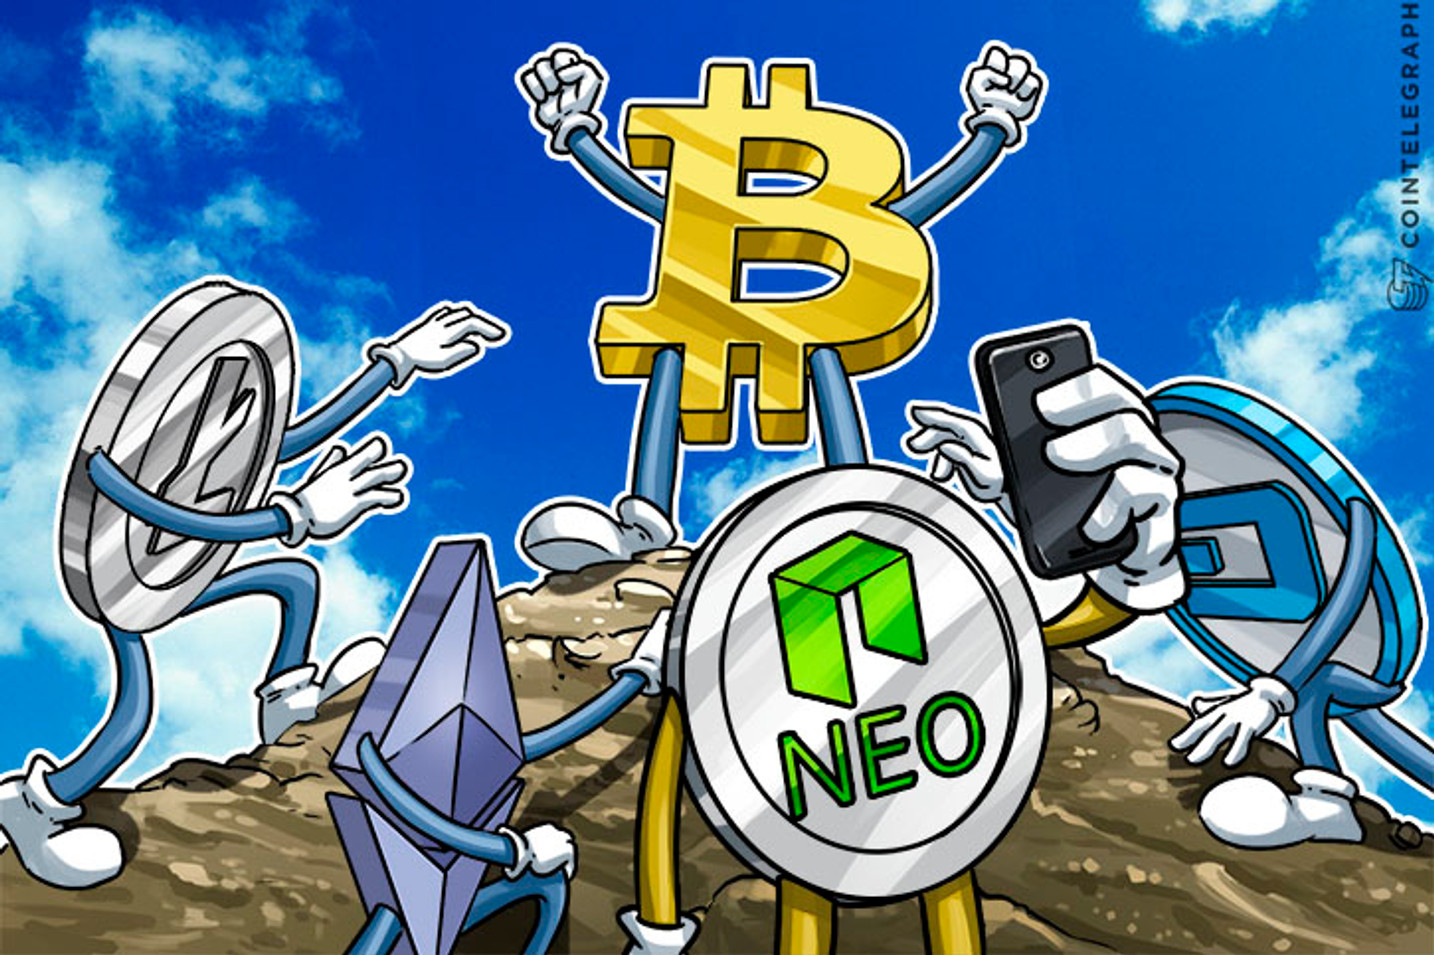 Surging Price Allows Digital Currency NEO to Enter Top 10 List, Bitcoin Remains on Top